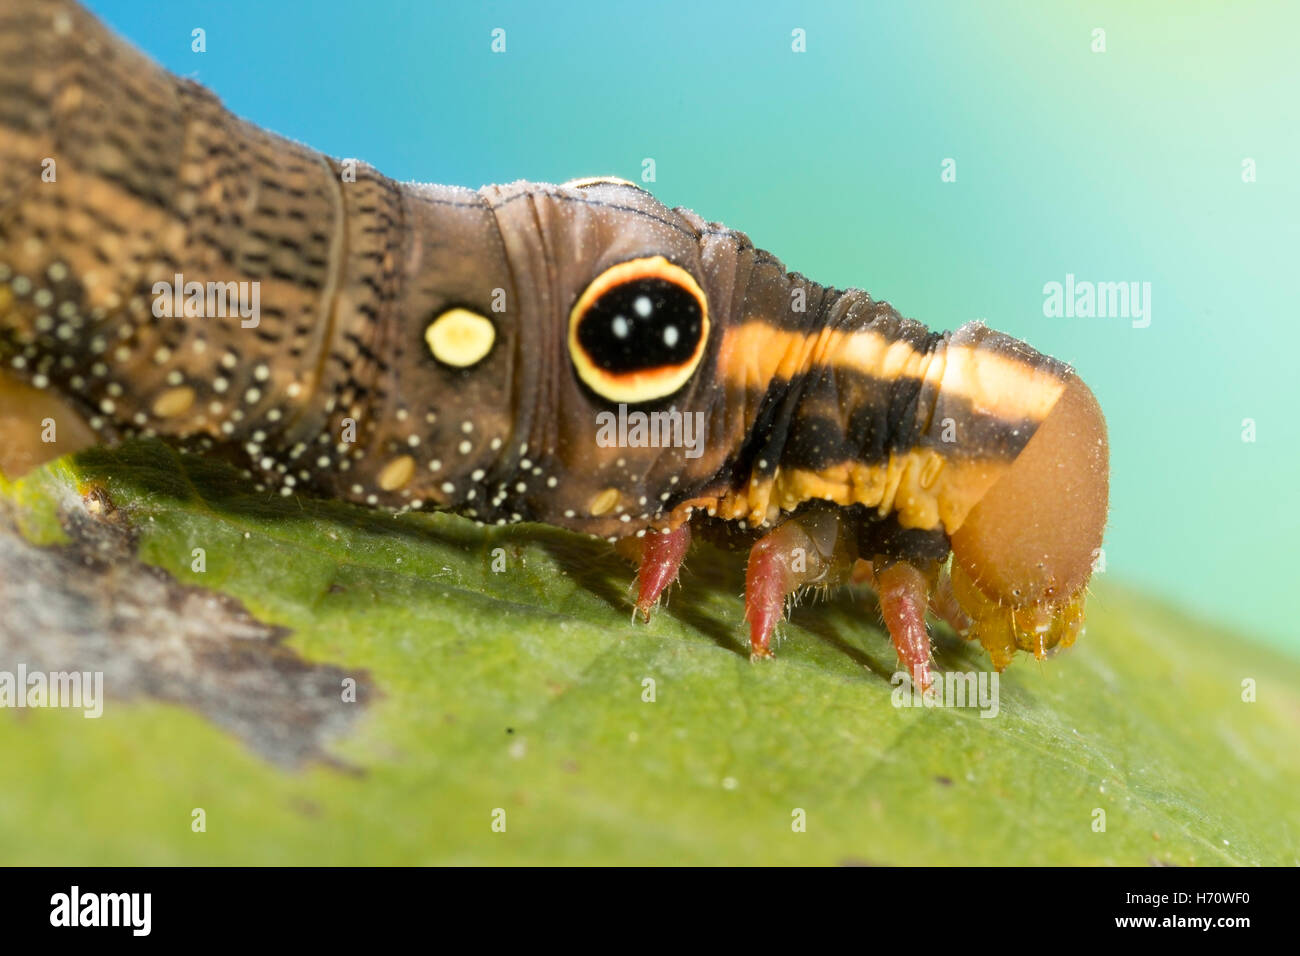 Hawk Moth Vine's False eye caterpillar (Hippotion rosetta) Photo Stock